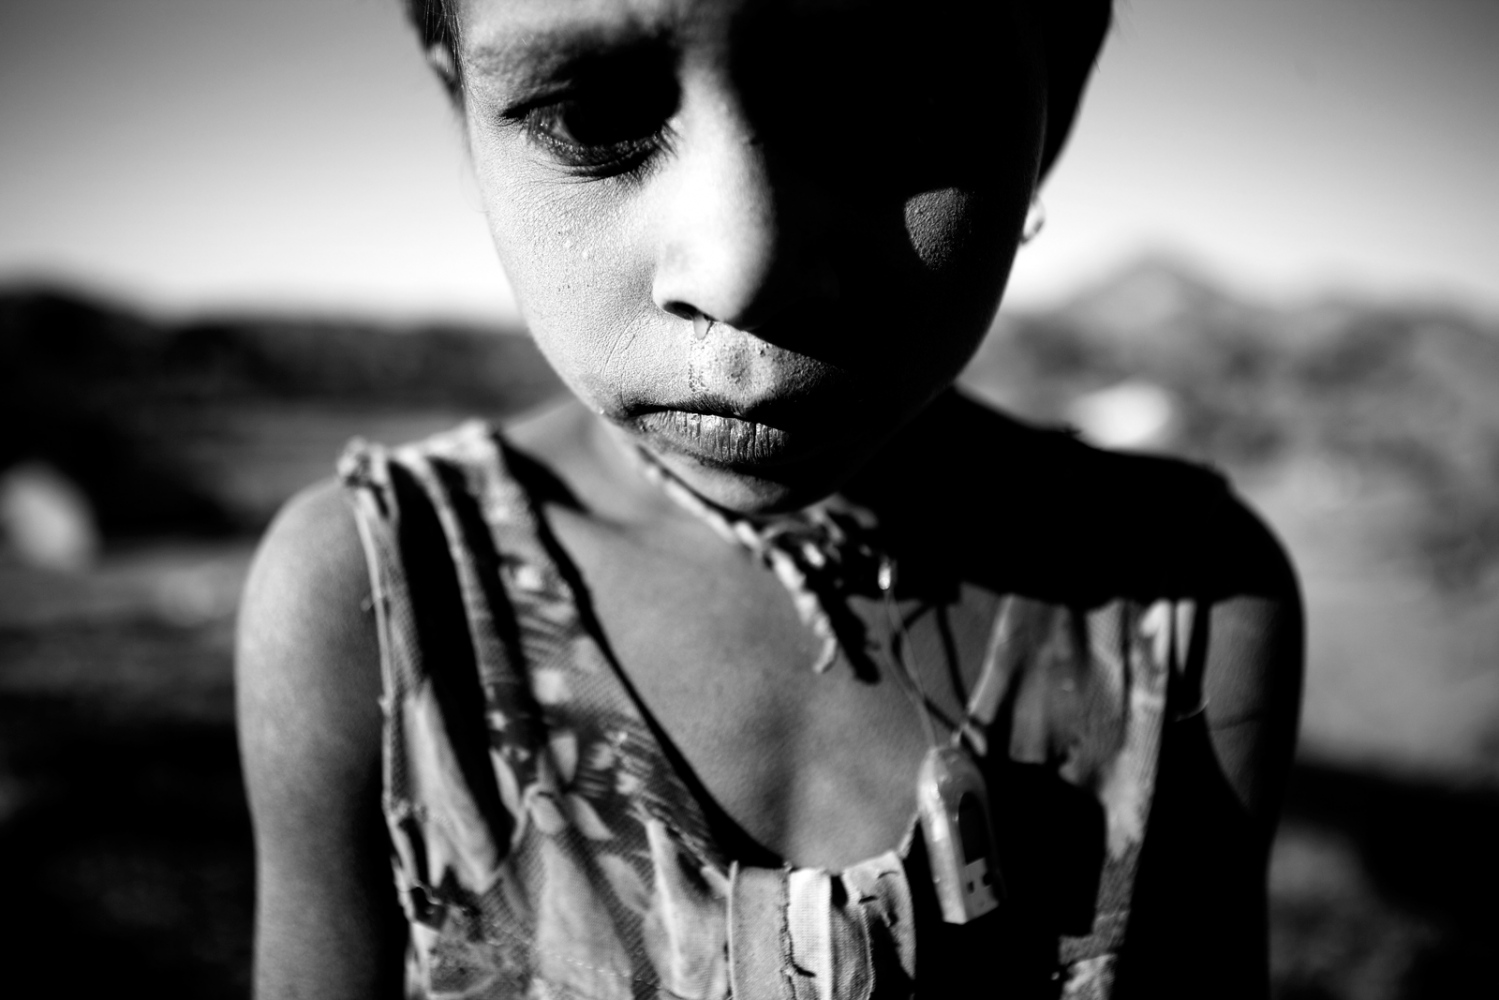 Palu, Rajasthan 2012 While interviewing the widow Hansa Bai in a tini village with no electricity far off road we met little Palu. She is one of three daughters from the poorest family there. Her eyes are amber and her hair has blond streaks due to malnutriton. She wore a broken USB around her neck.